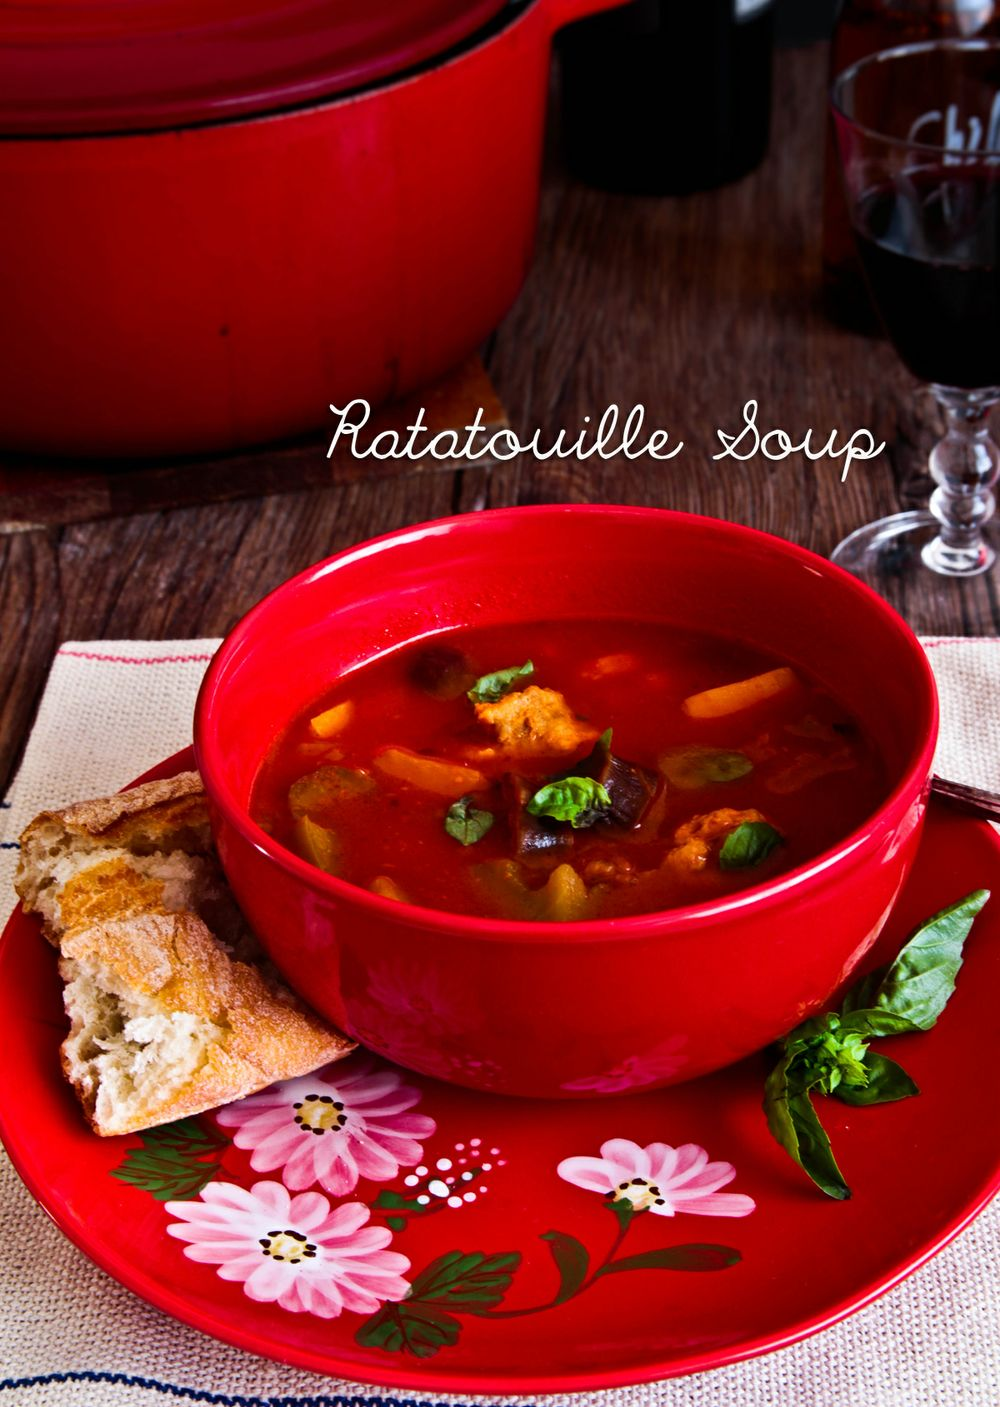 m-ratatouille-soup-2-3